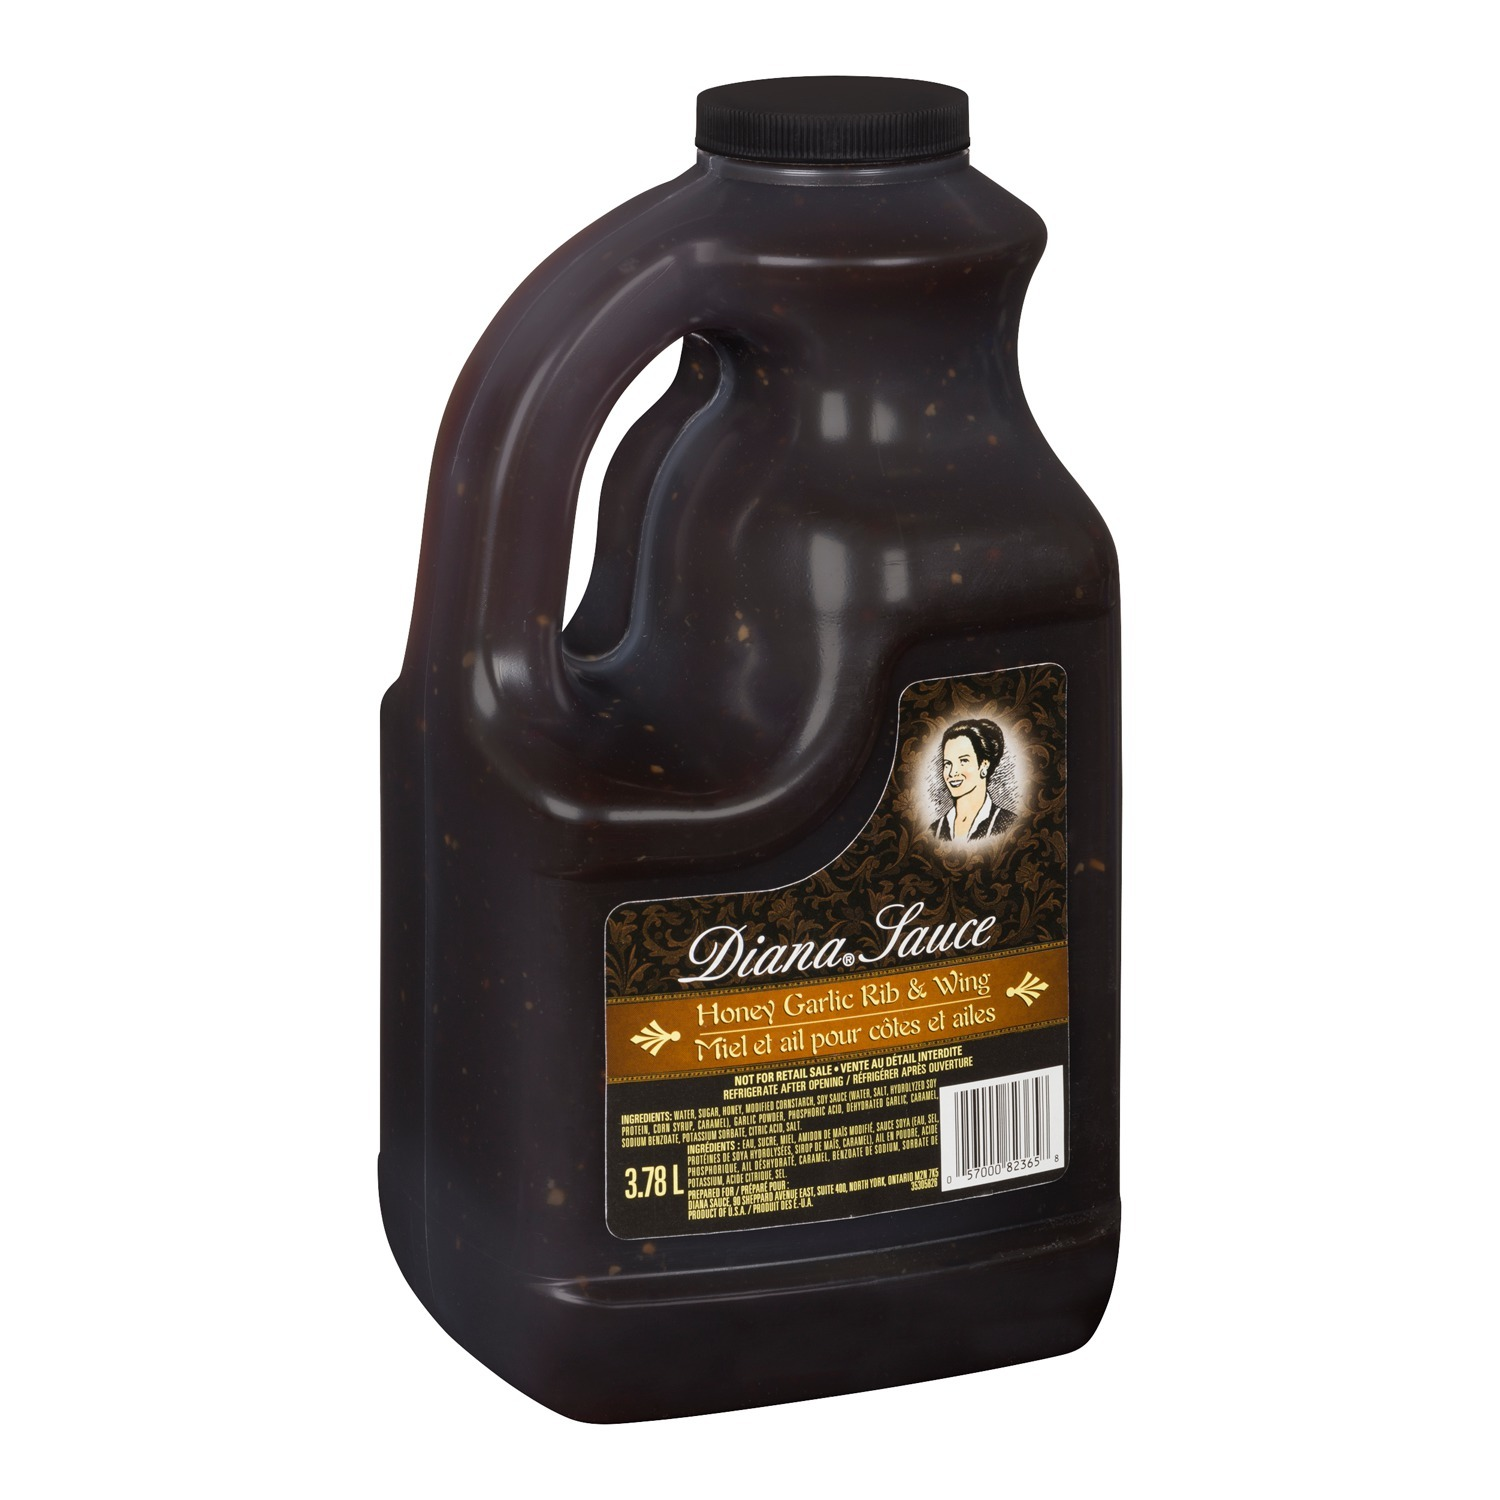 DIANA Sauce Honey Garlic Rib & Wing 3.78L 2